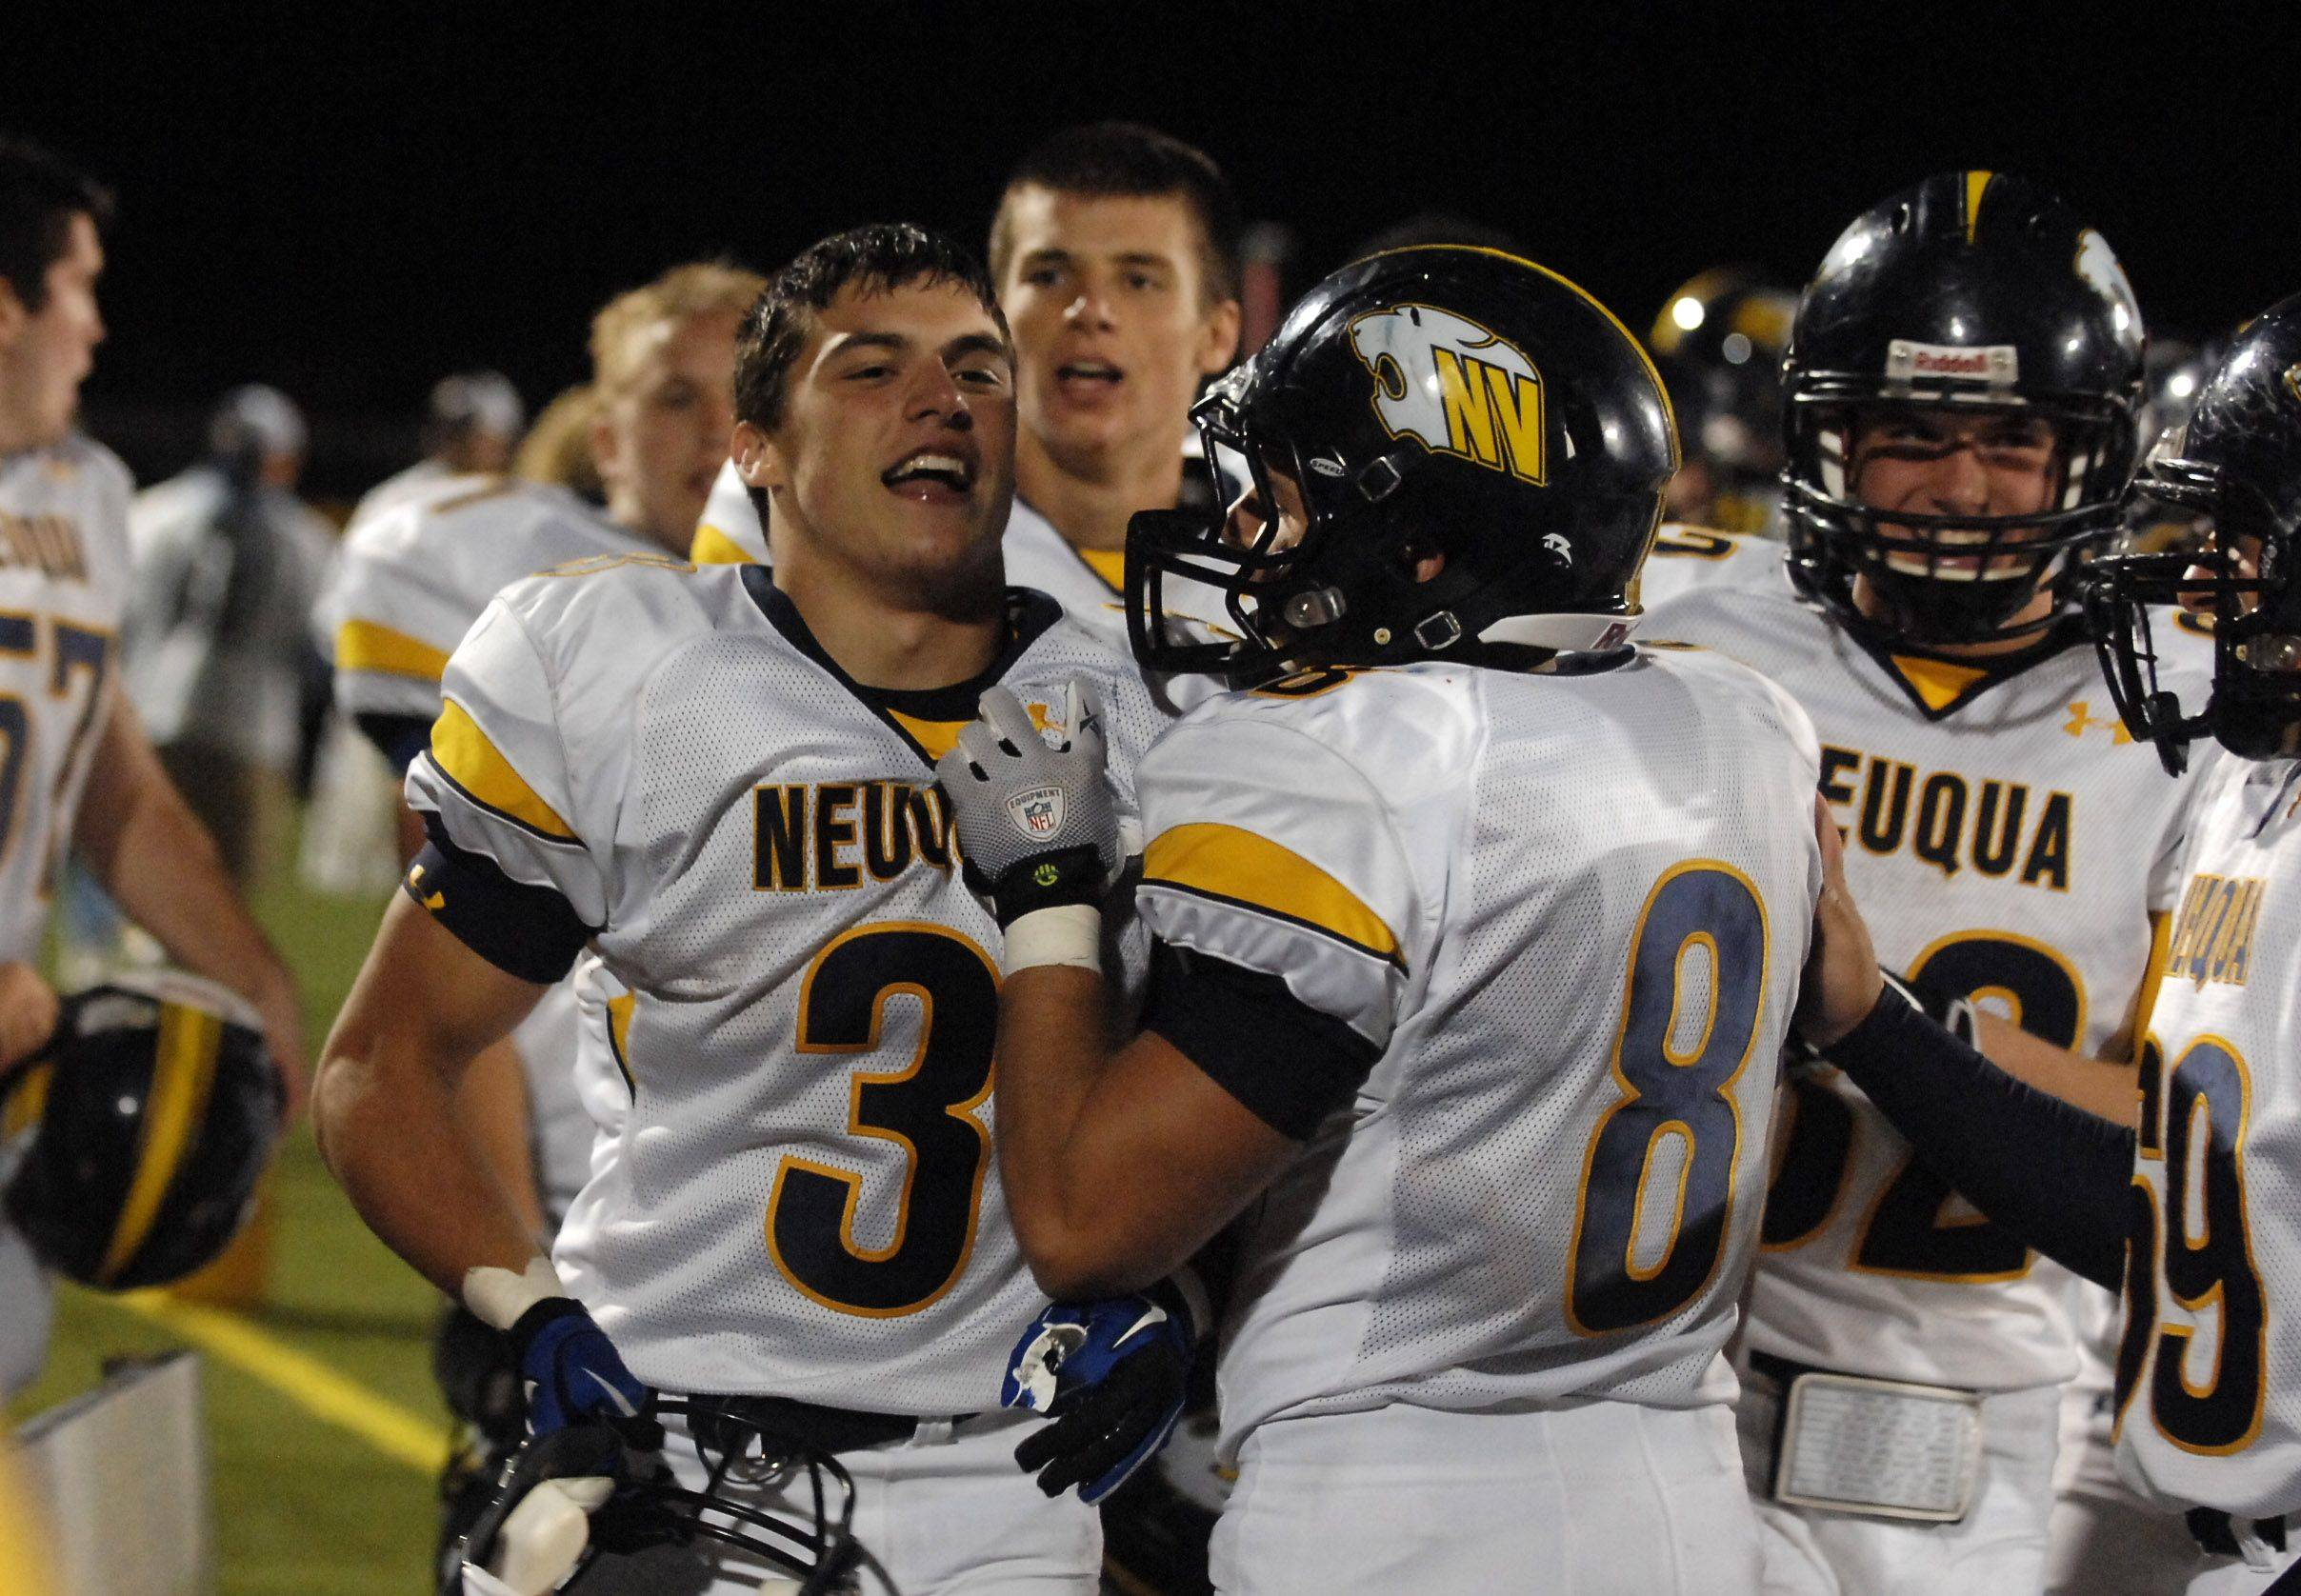 WEEK 8- Neuqua Valley teammates congratulate Dillon Strack after he returned the opening kickoff of the second half for a touchdown against Bartlett.